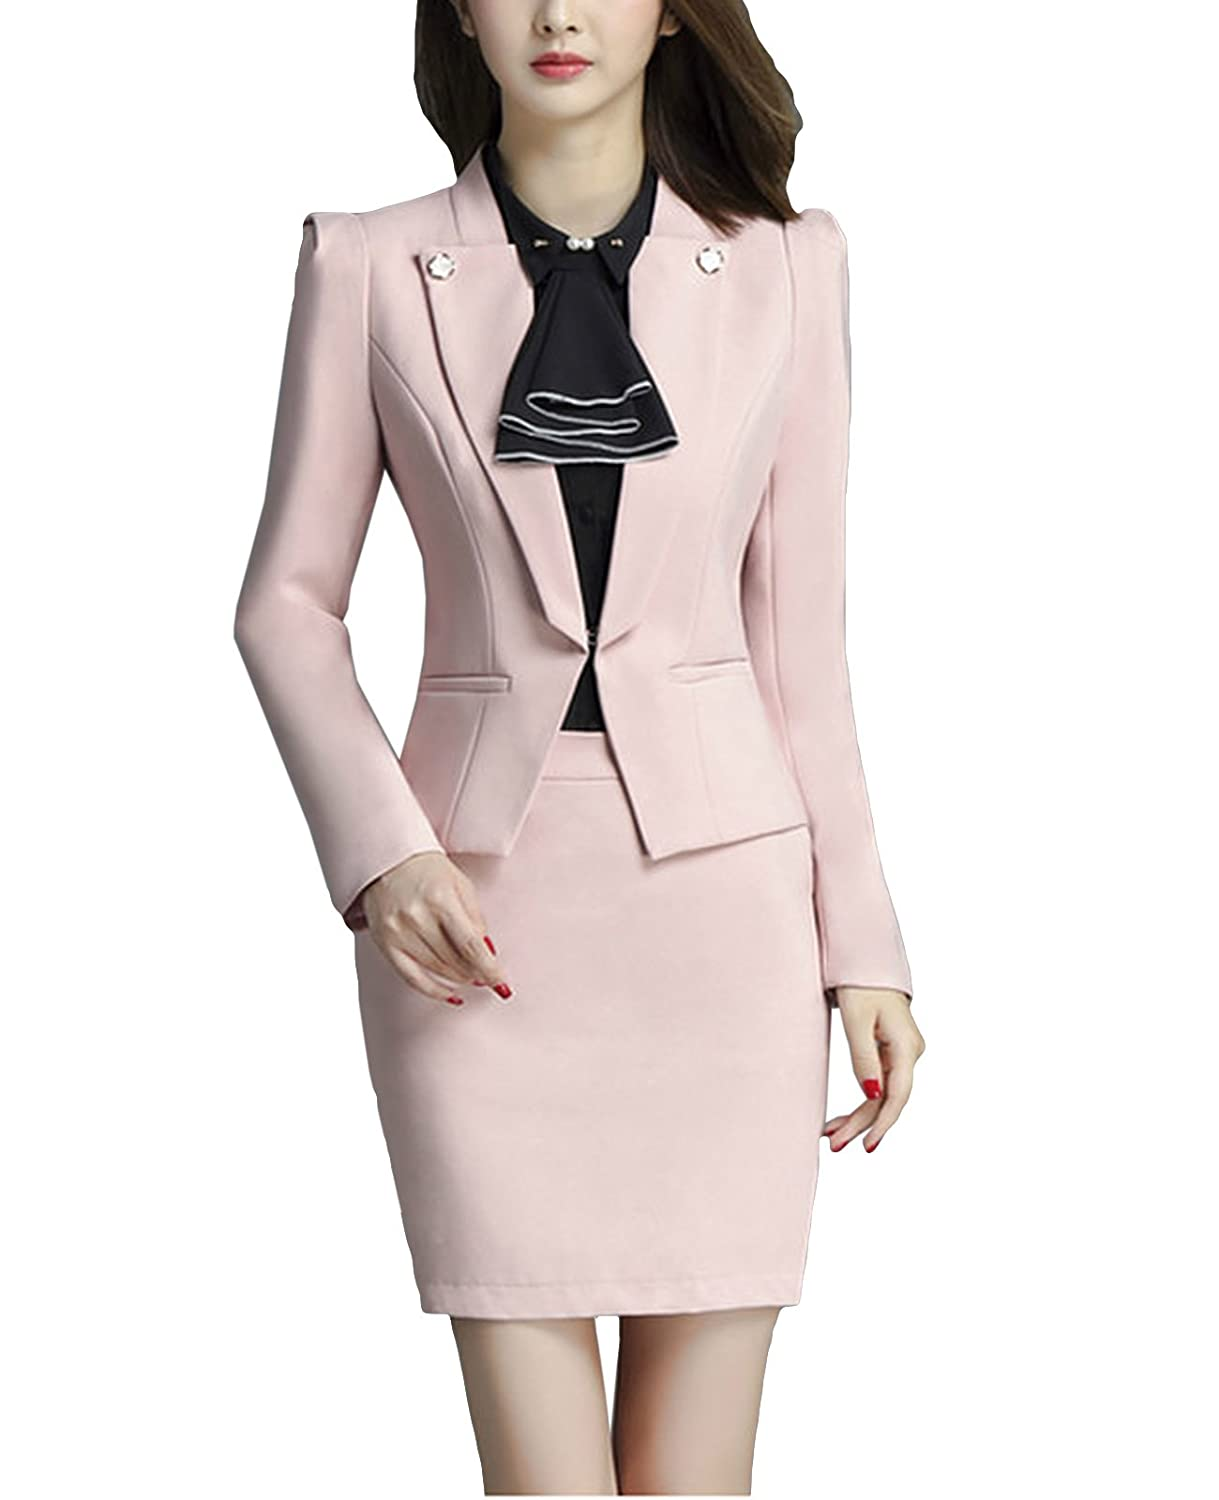 MFrannie Women 2-Piece Long Sleeve Office Lady Suit Set of Blazer & Skirt